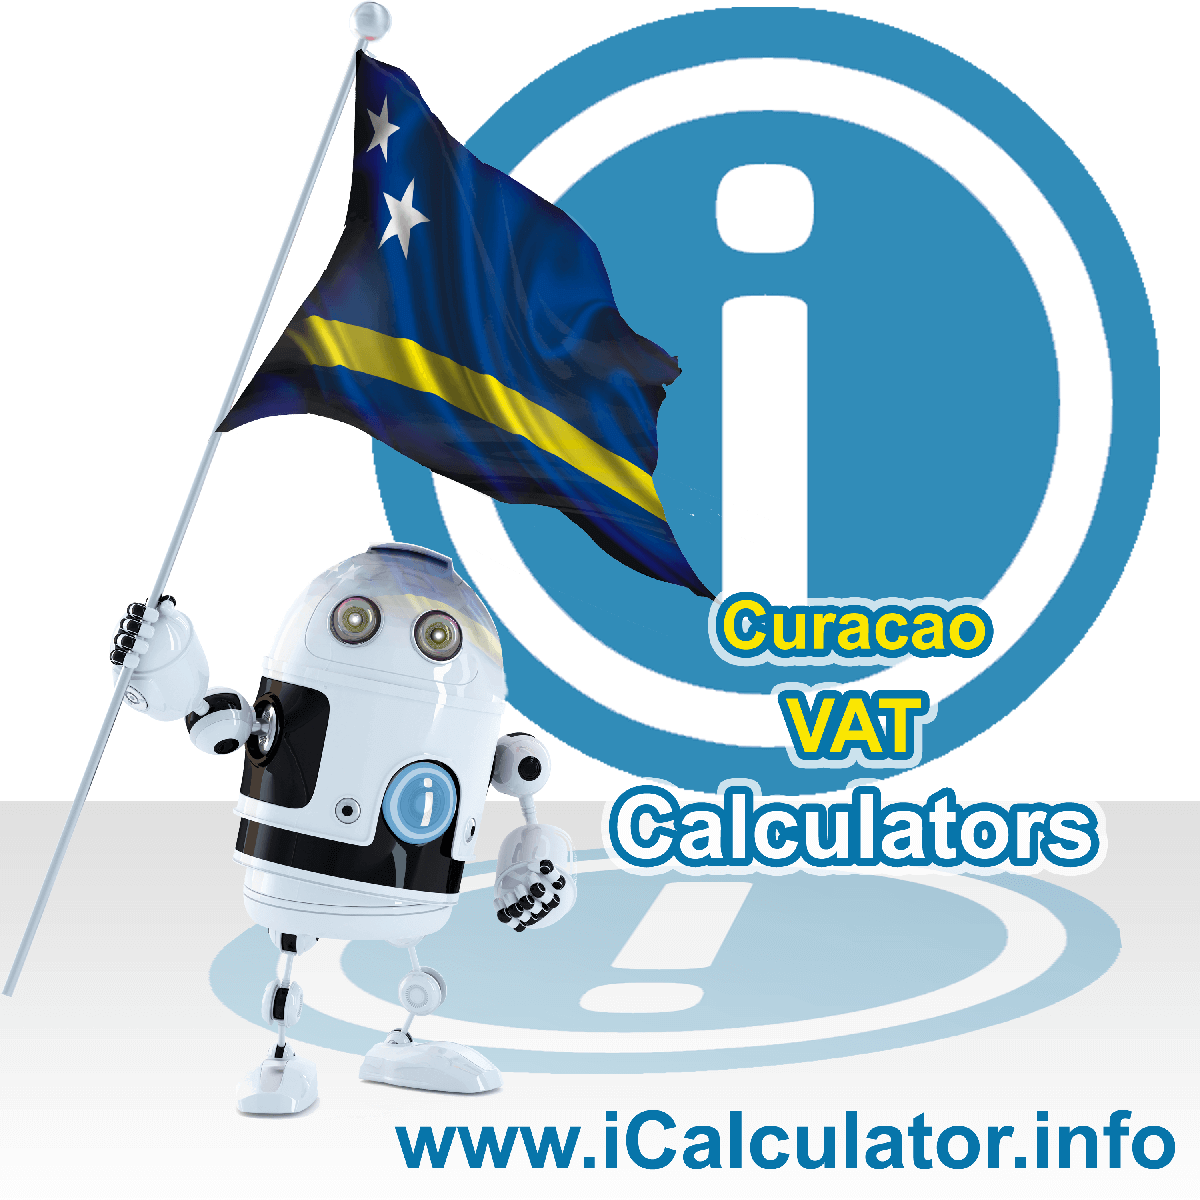 Curacao VAT Calculator. This image shows the Curacao flag and information relating to the VAT formula used for calculating Value Added Tax in Curacao using the Curacao VAT Calculator in 2020